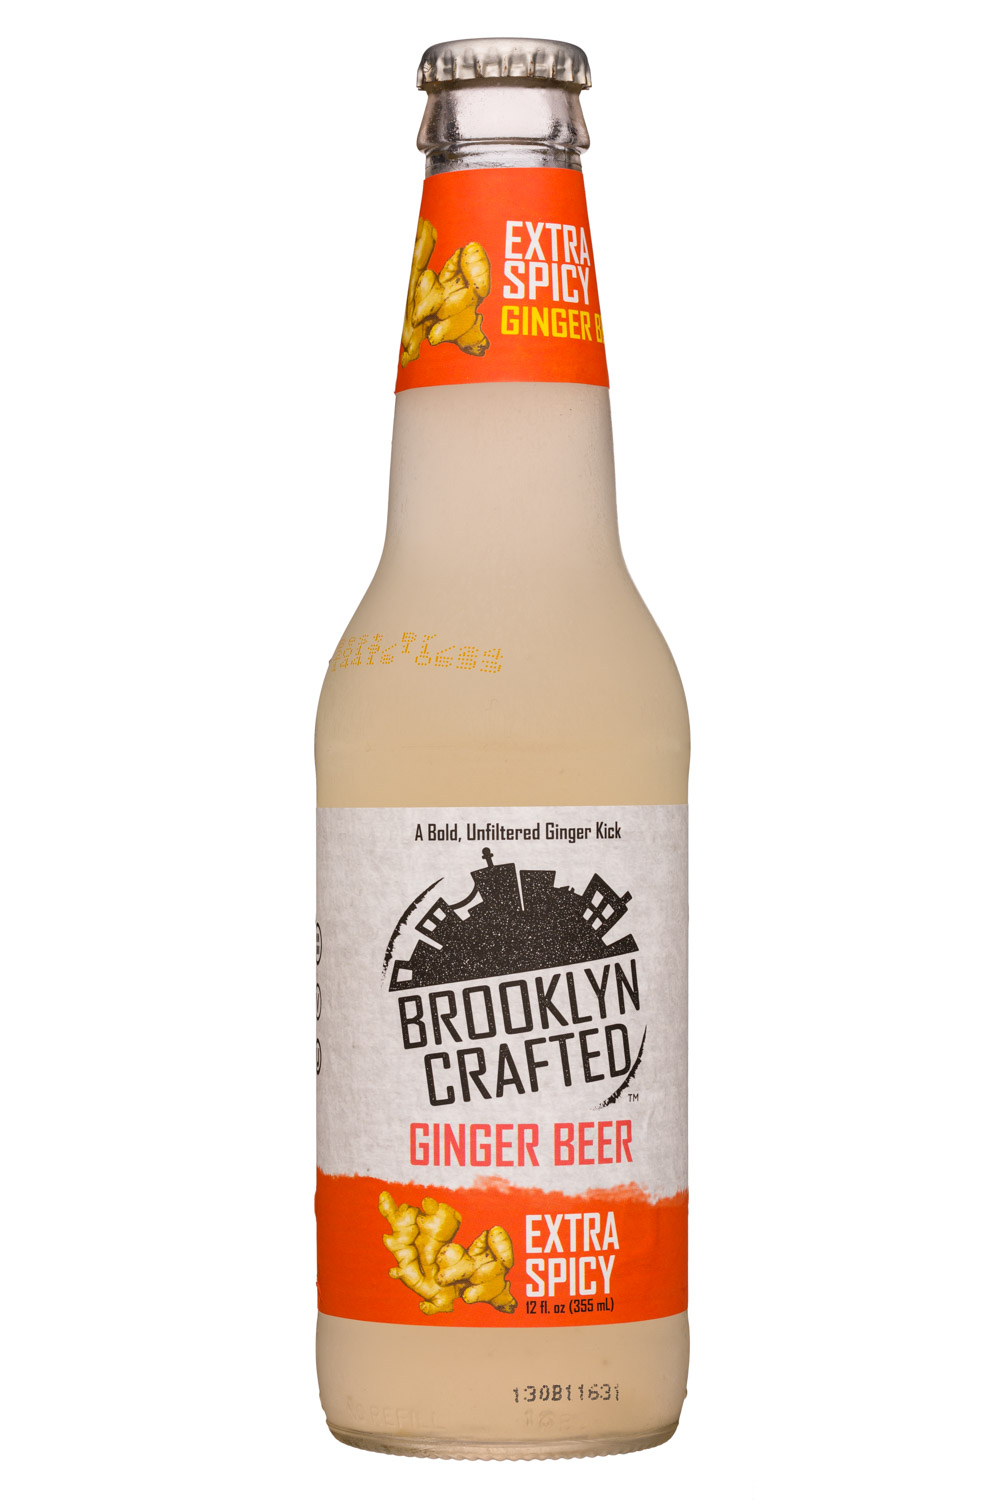 Brooklyn Crafted: BrooklynCrafted-12oz-GingerBeer-ExtraSpicy-Front